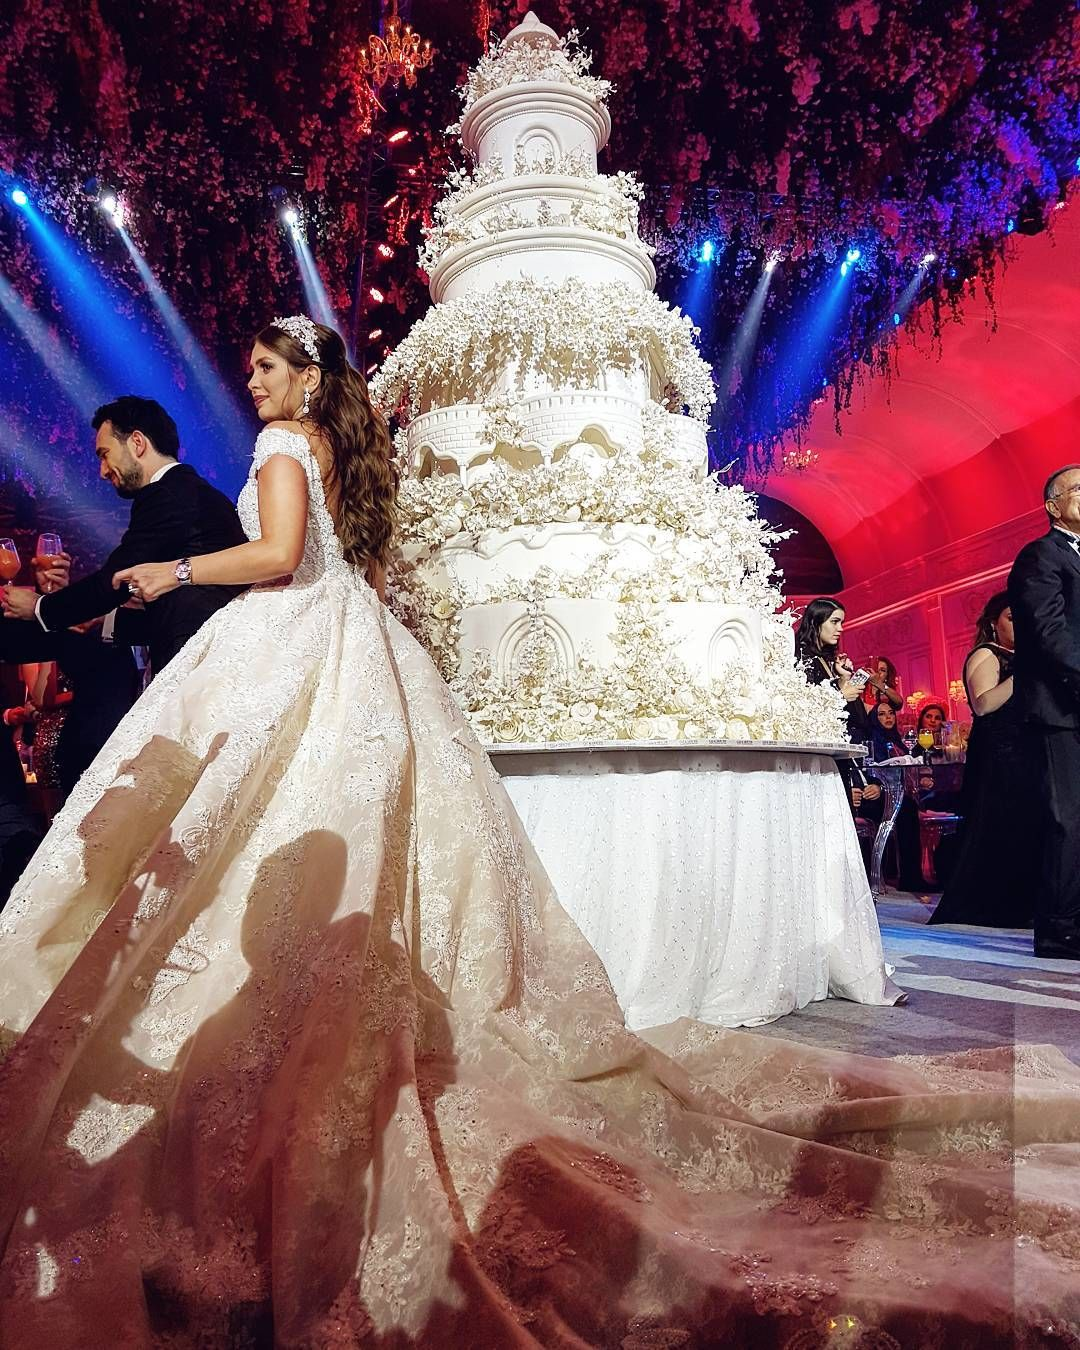 The Most Amazing Wedding Cakes Of 2013: More Of Yesterday's Wedding This Wedding Cake Is